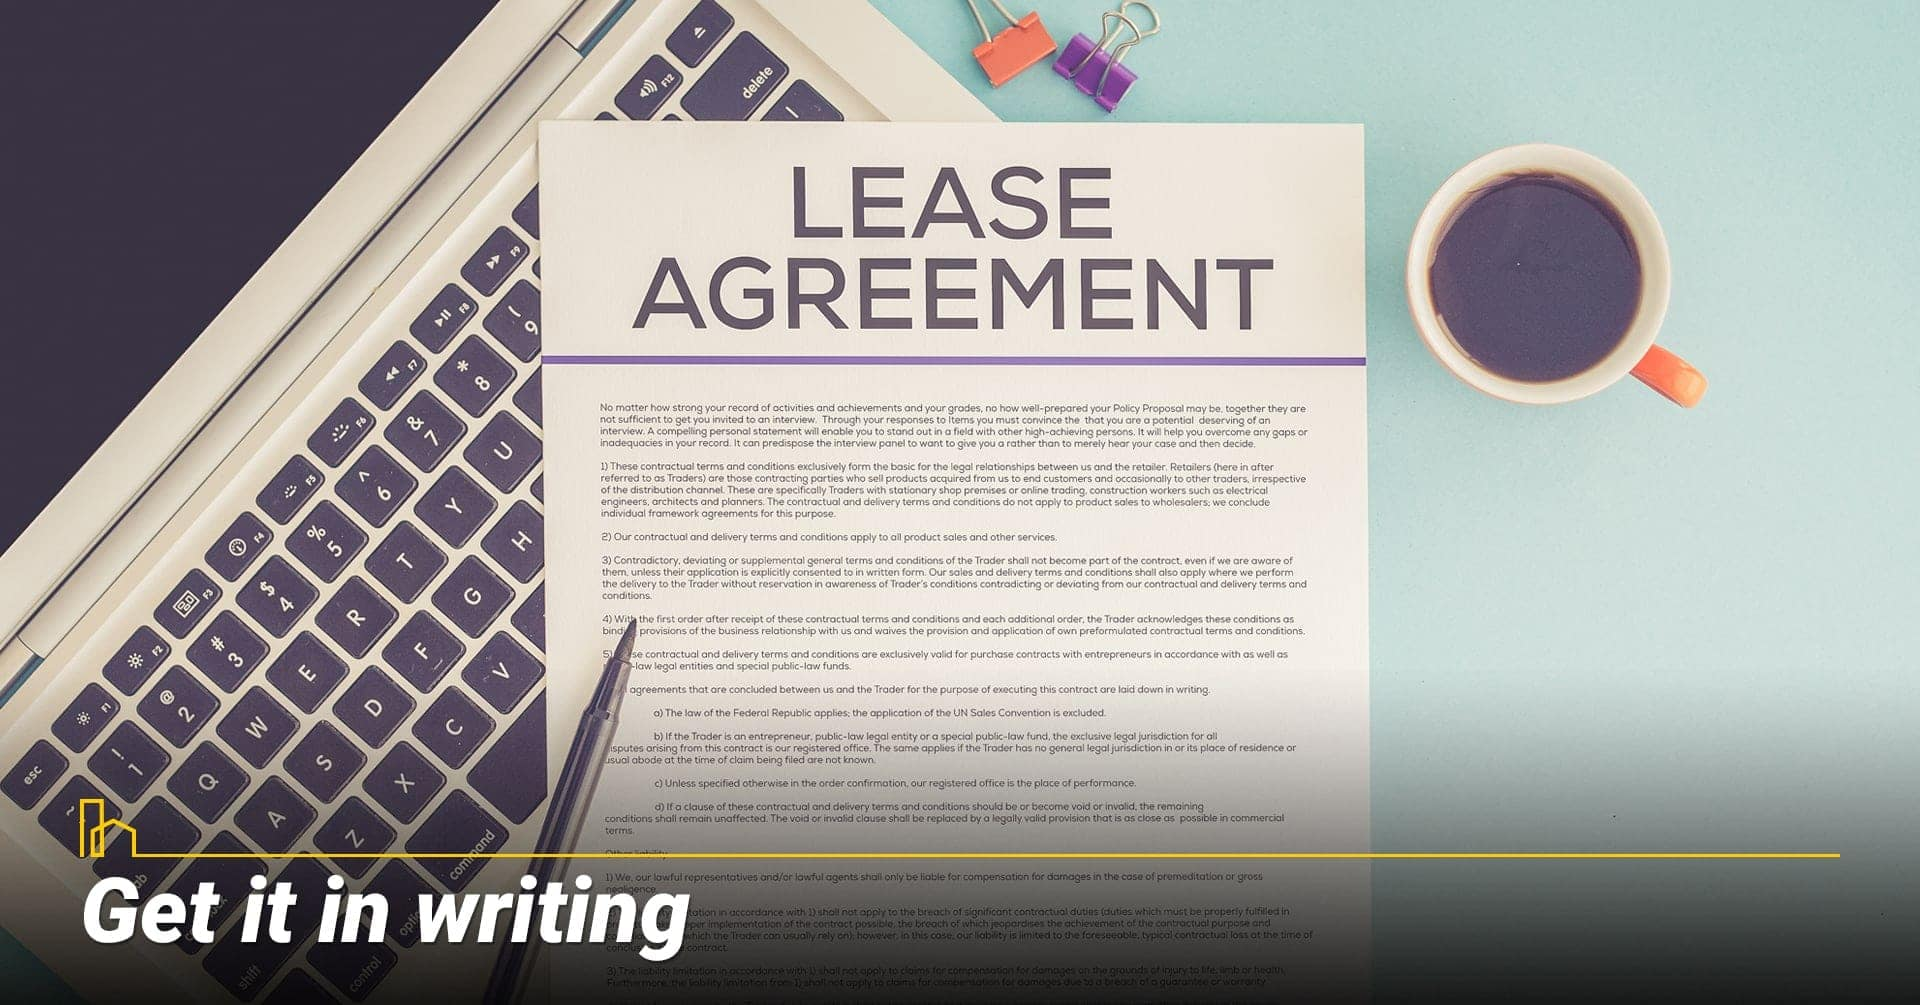 Get it in writing, make sure to use lease agreement